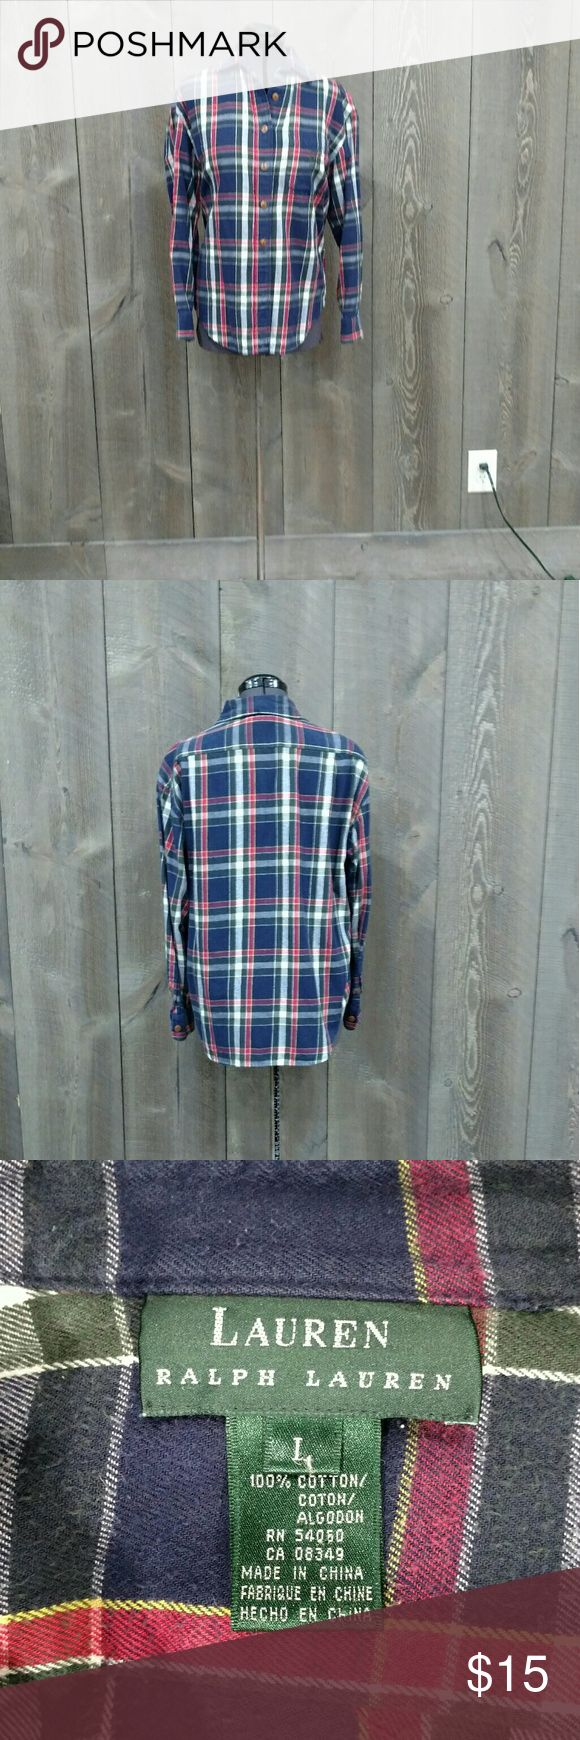 Ladies flannel shirt Warm and comfortable flannel shirt. Great as a over shirt or tied around your waist. Navy plaid, button up front. Ralph Lauren Tops Button Down Shirts